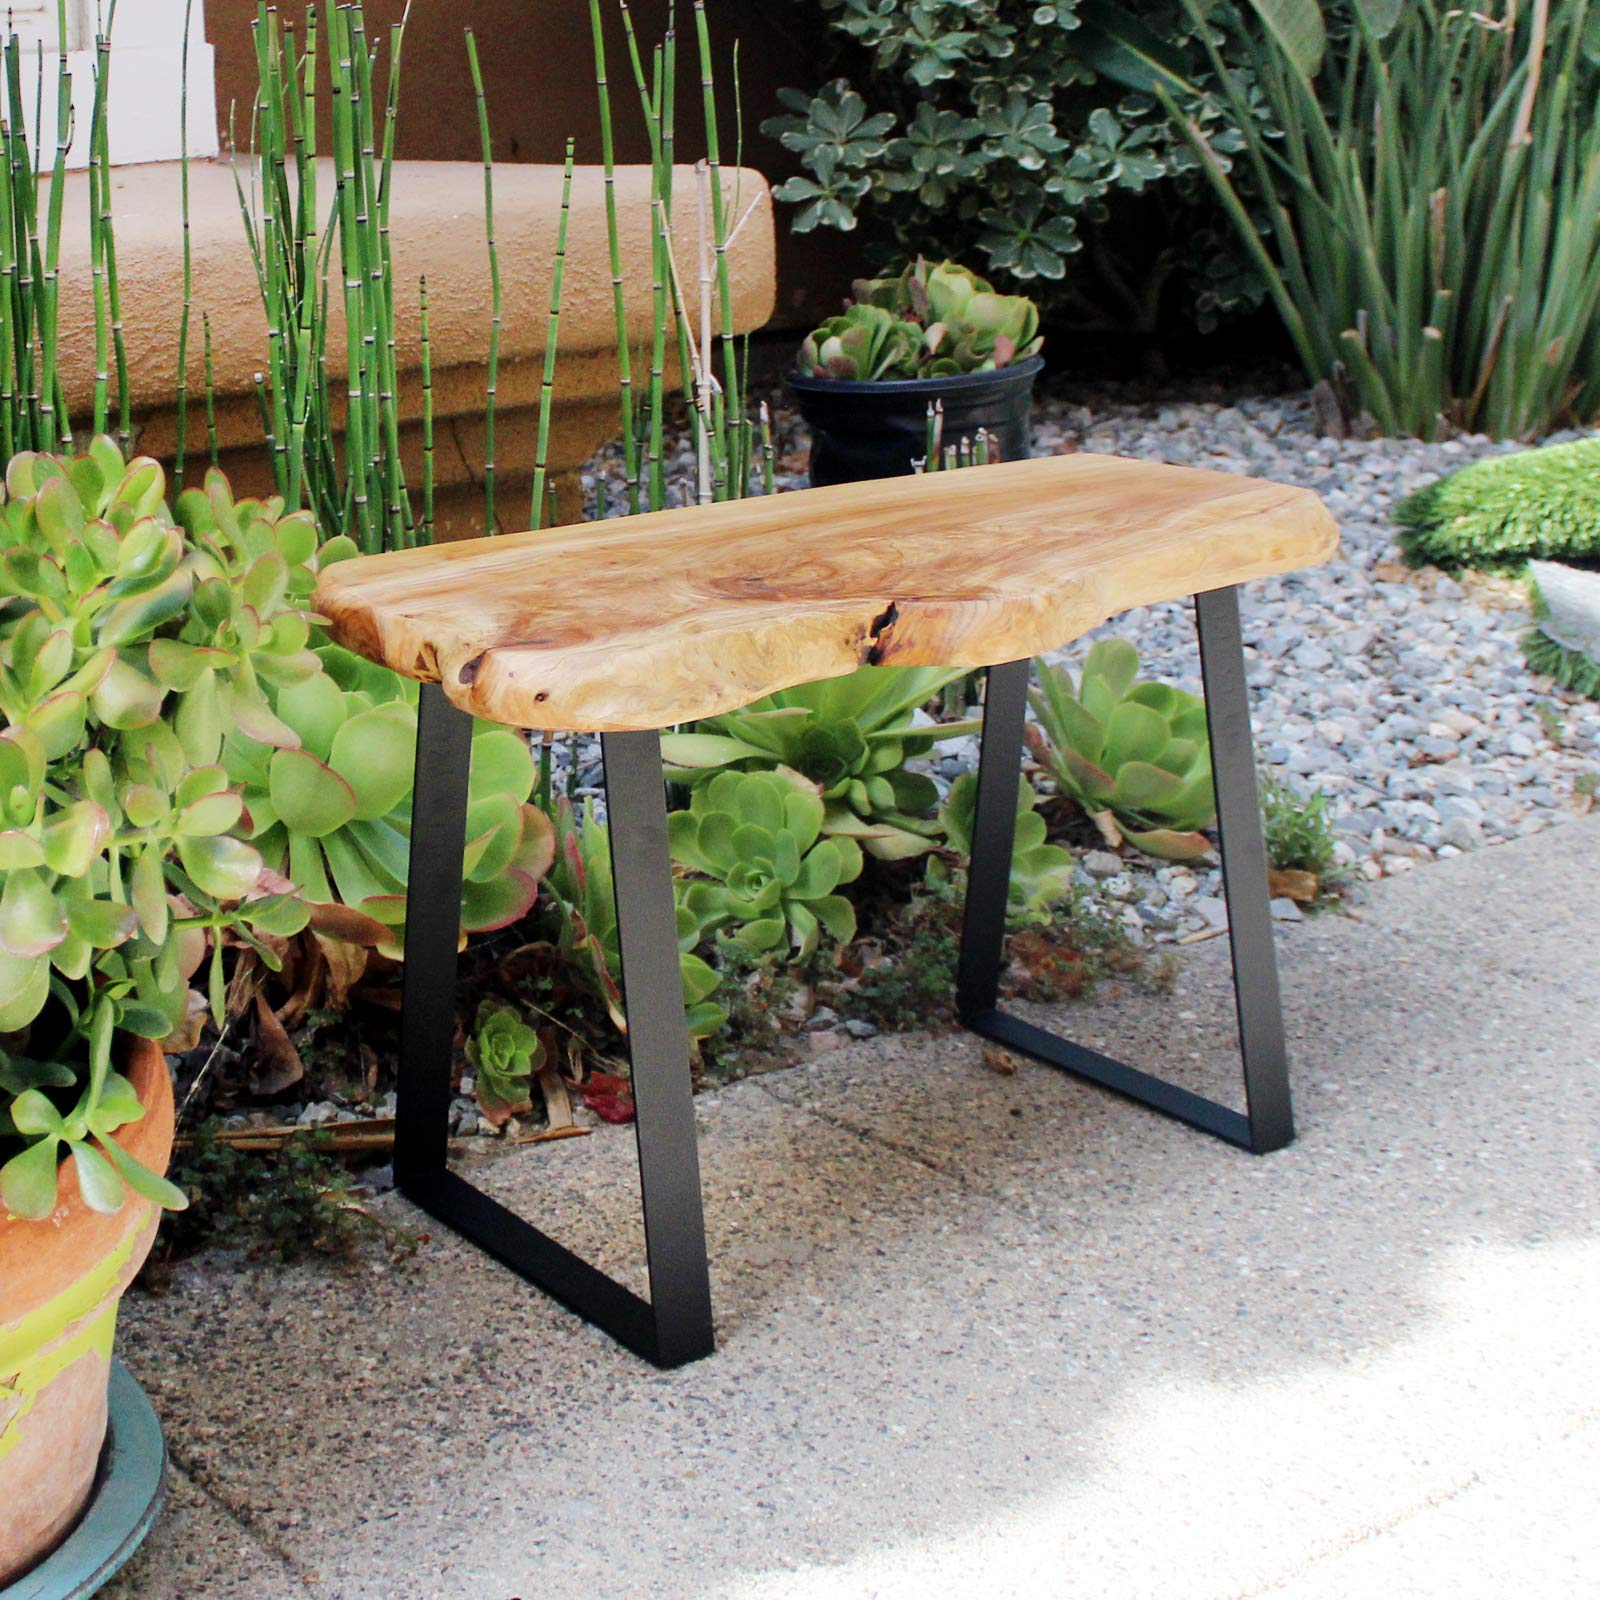 WELLAND Natural Edge Solid Wood Bench with Metal Legs, Cedar, 28'' Long by WELLAND (Image #4)